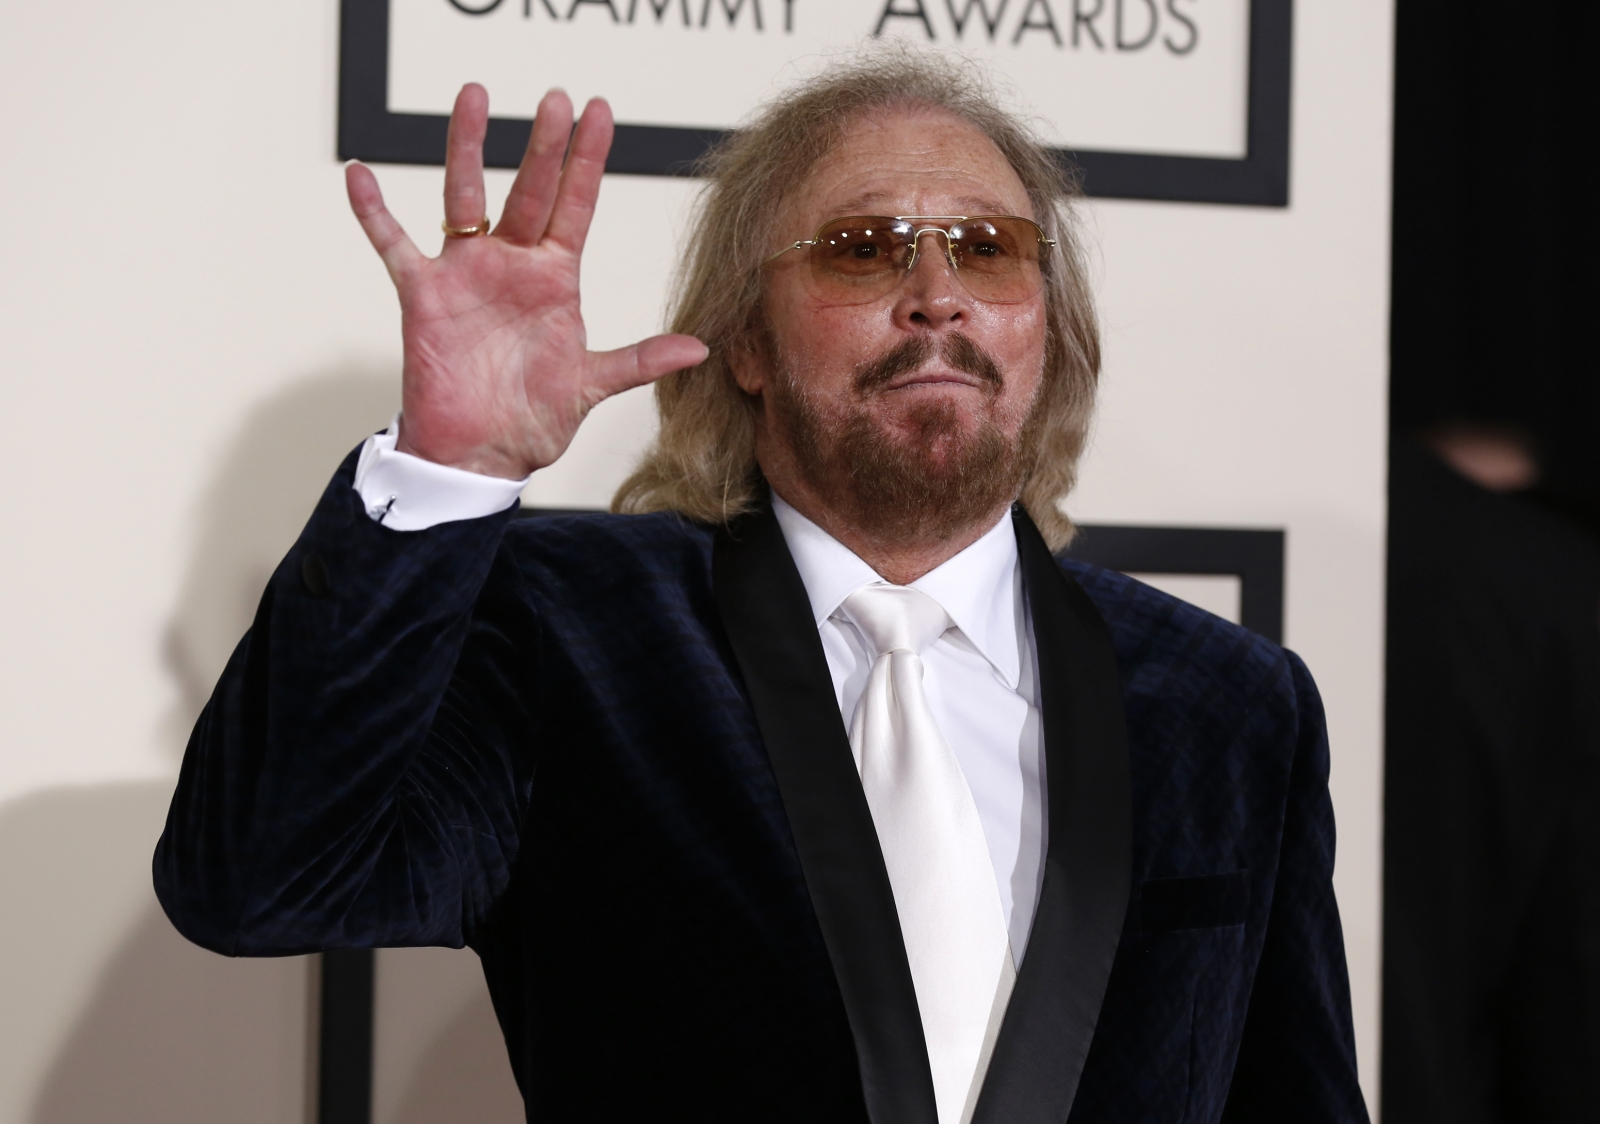 Barry Gibb